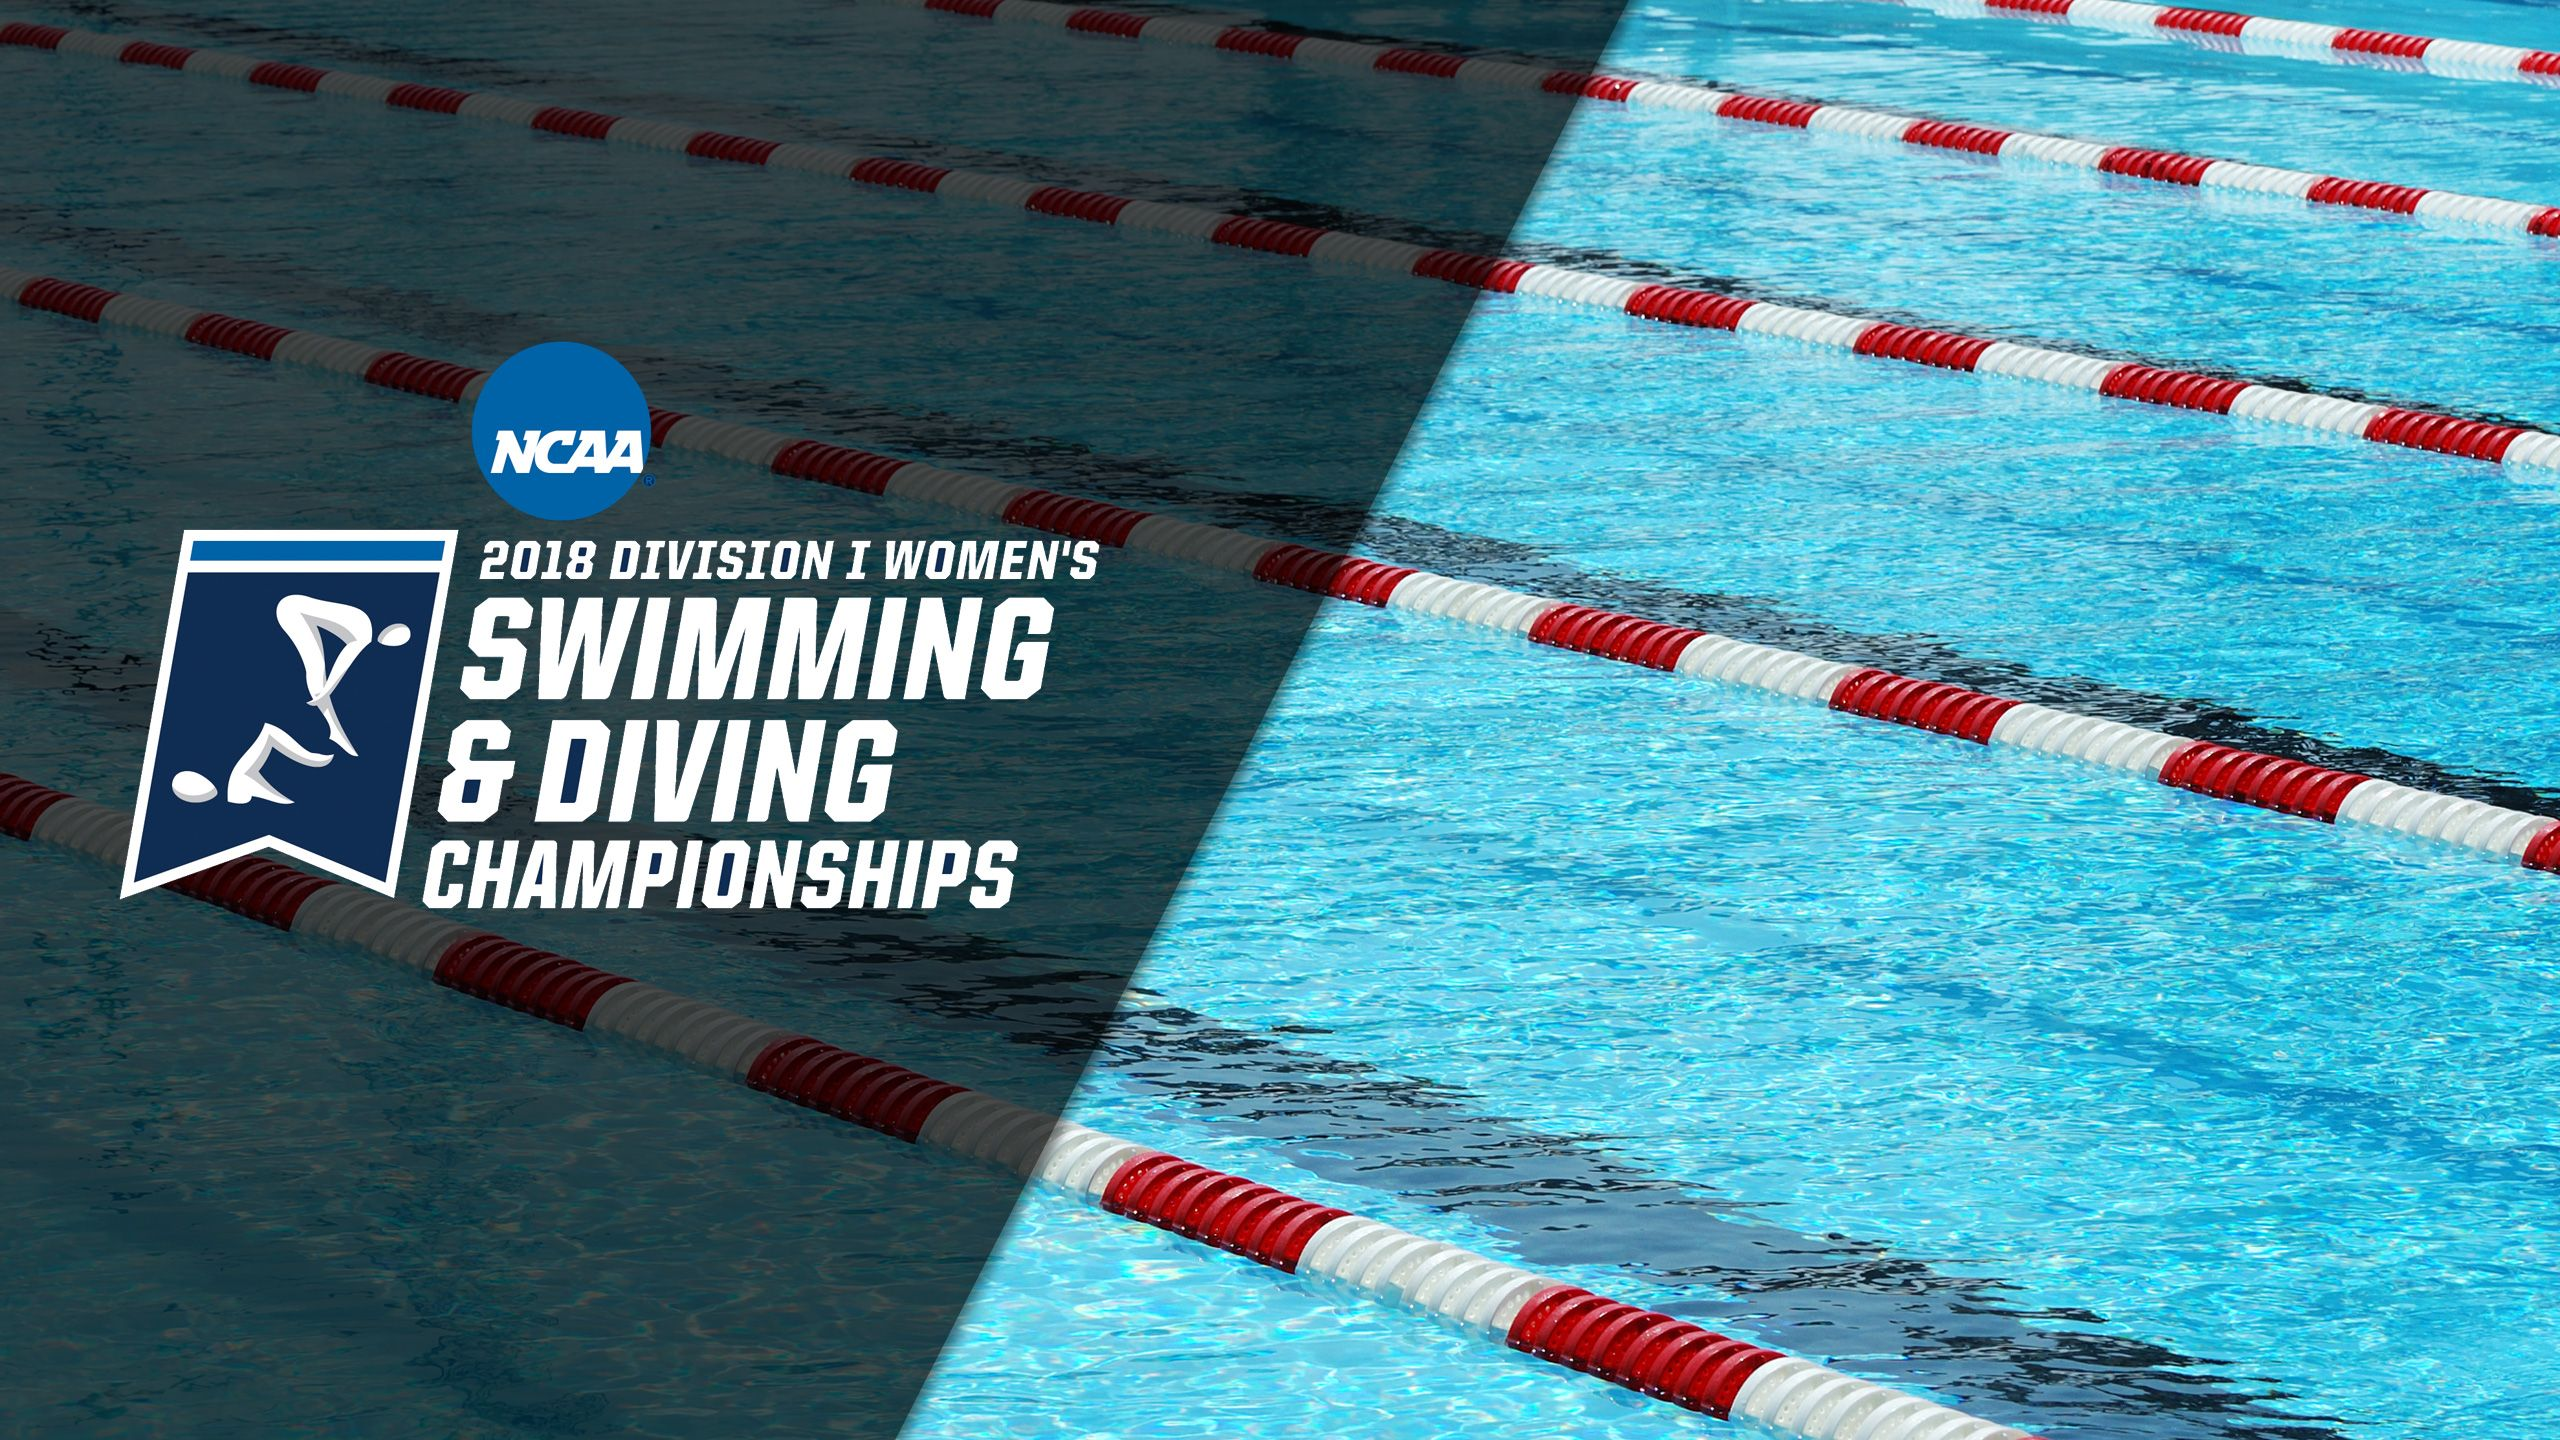 2018 NCAA Women's Swimming & Diving Championships (Championship)